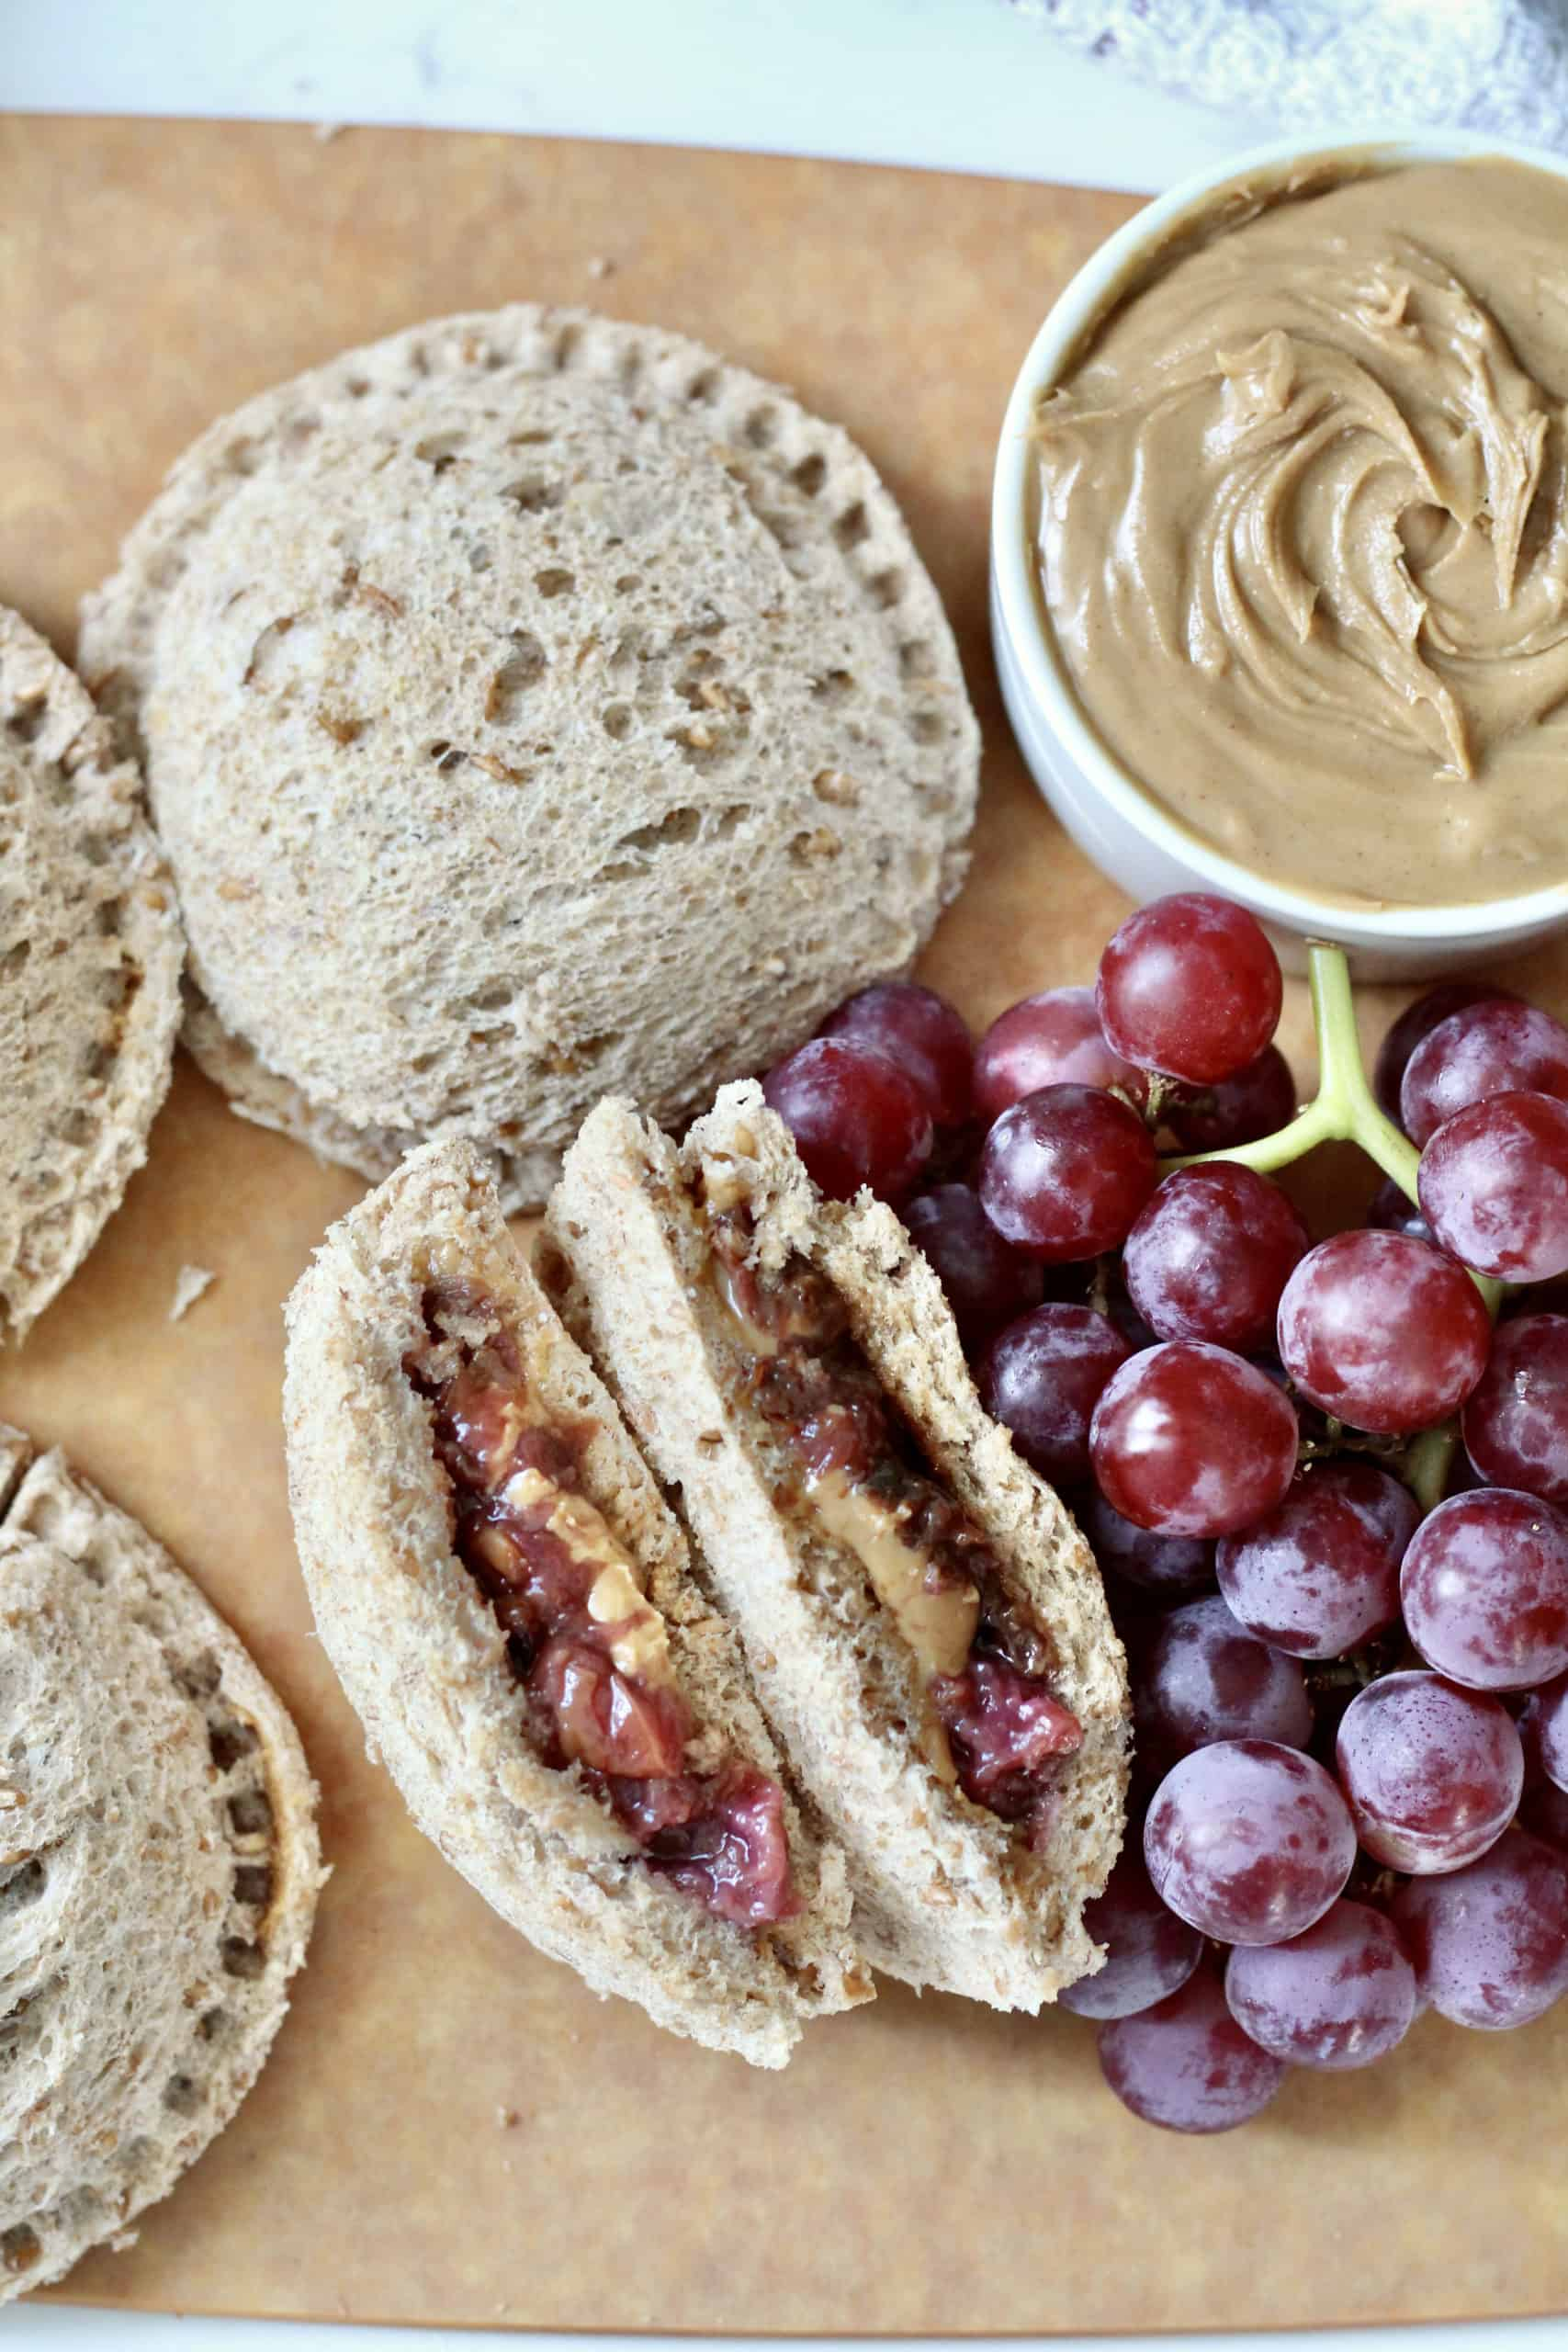 california grapes and peanut butter with homemade uncrustables